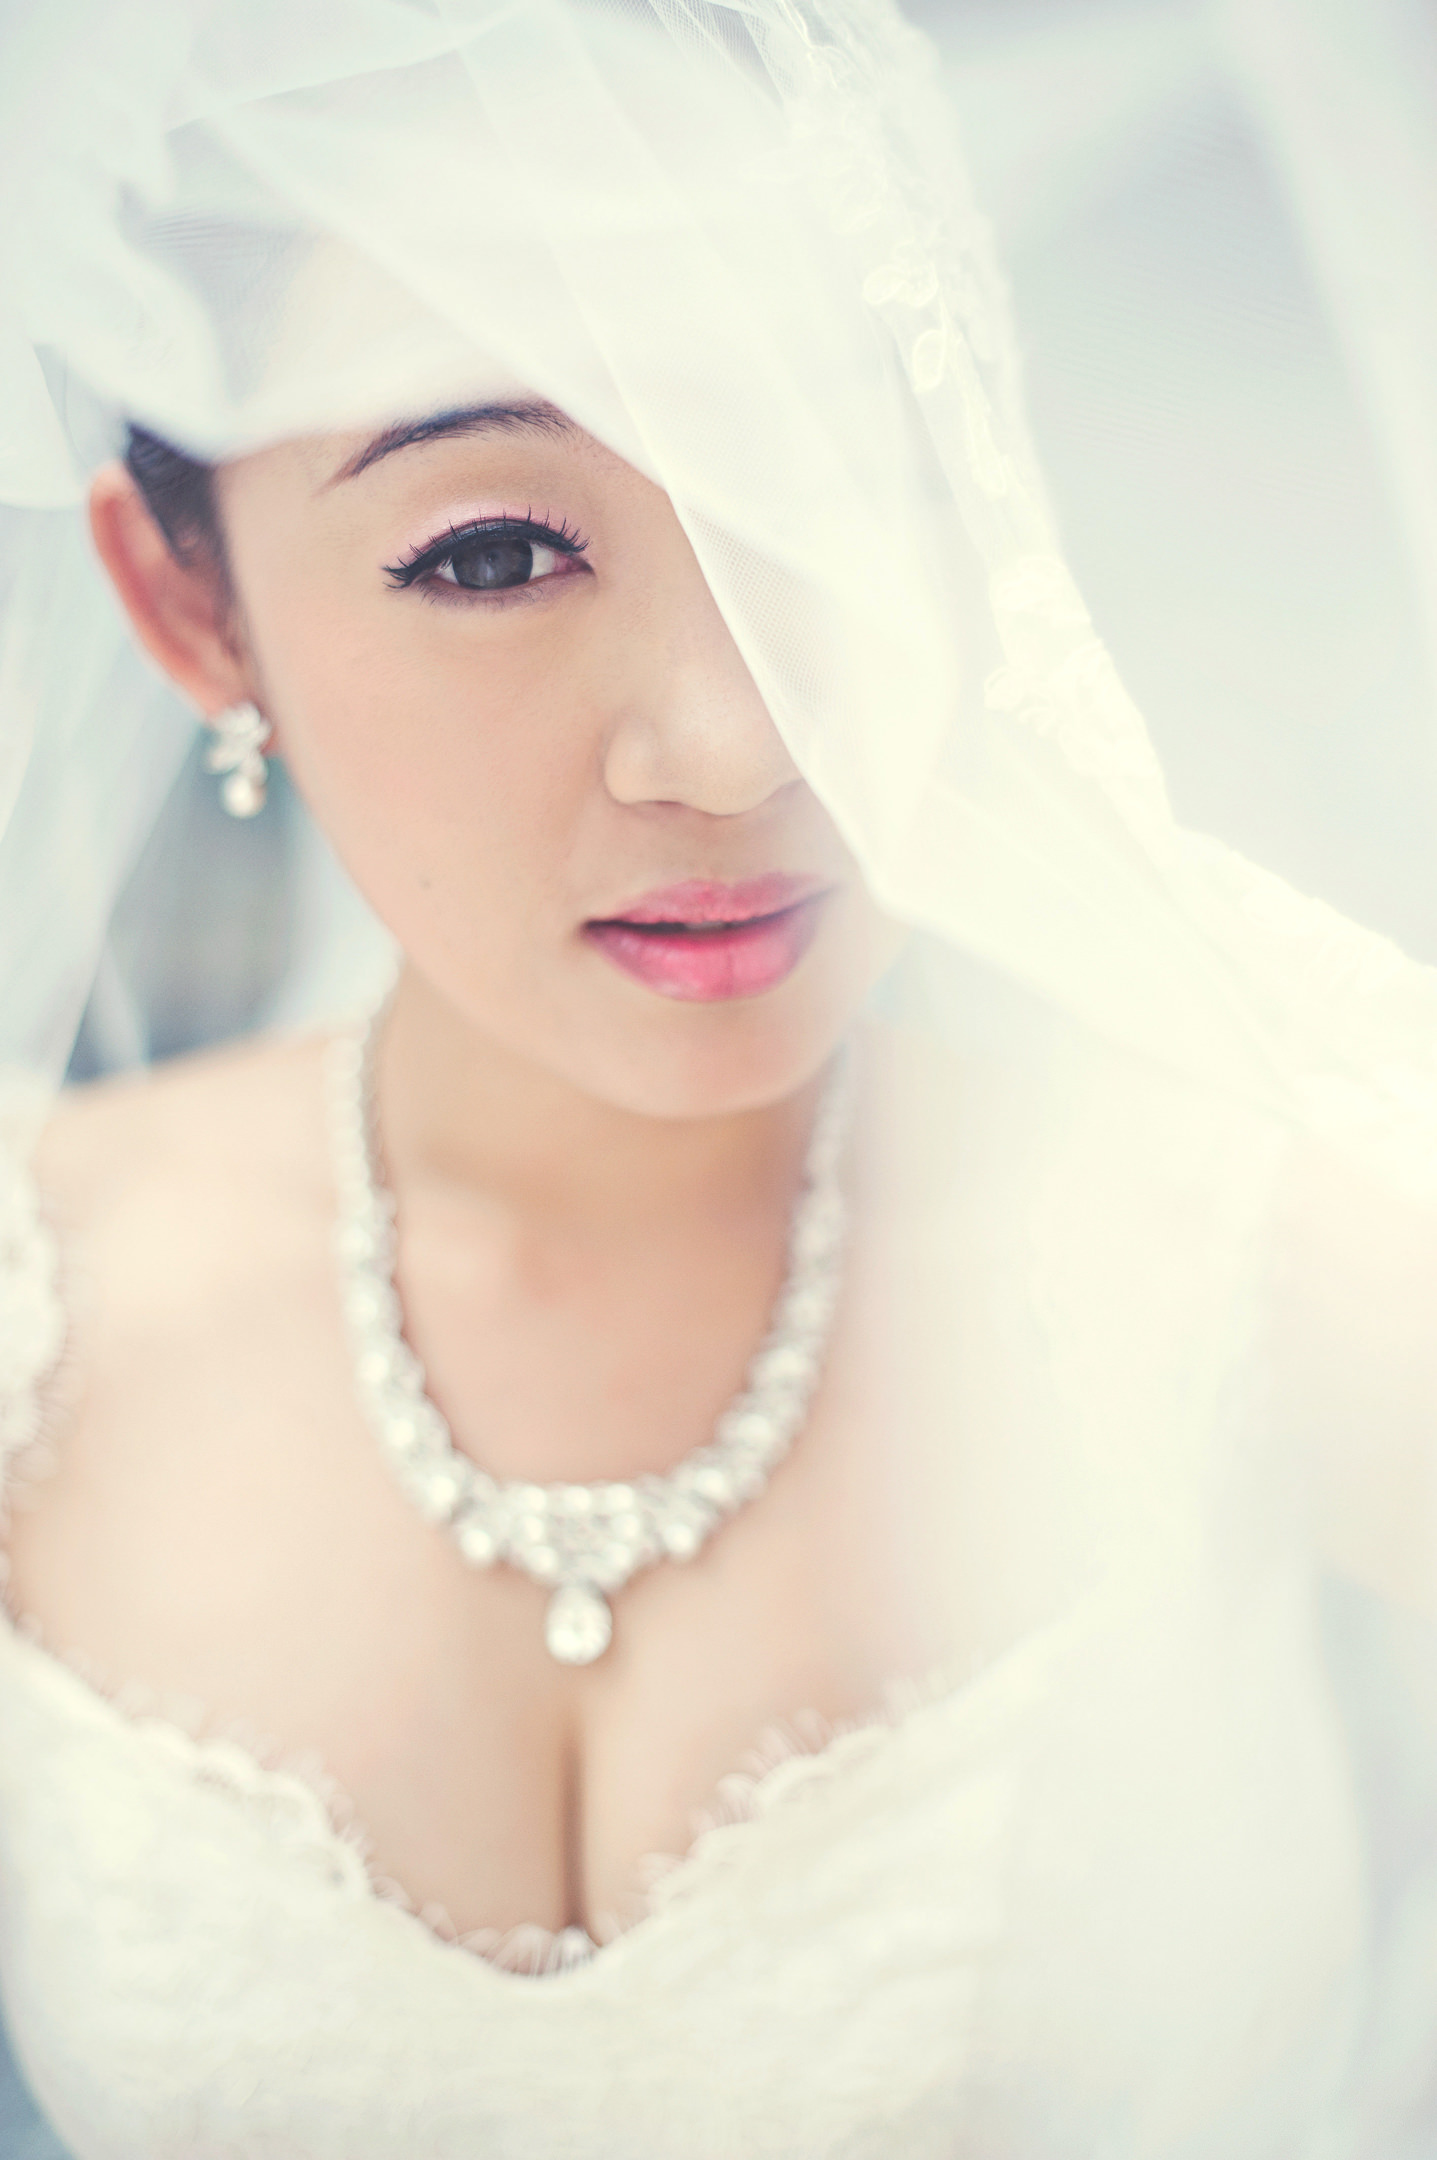 Chris_Hui_婚禮_婚紗照_pre_wedding_photography_best_056_.jpg